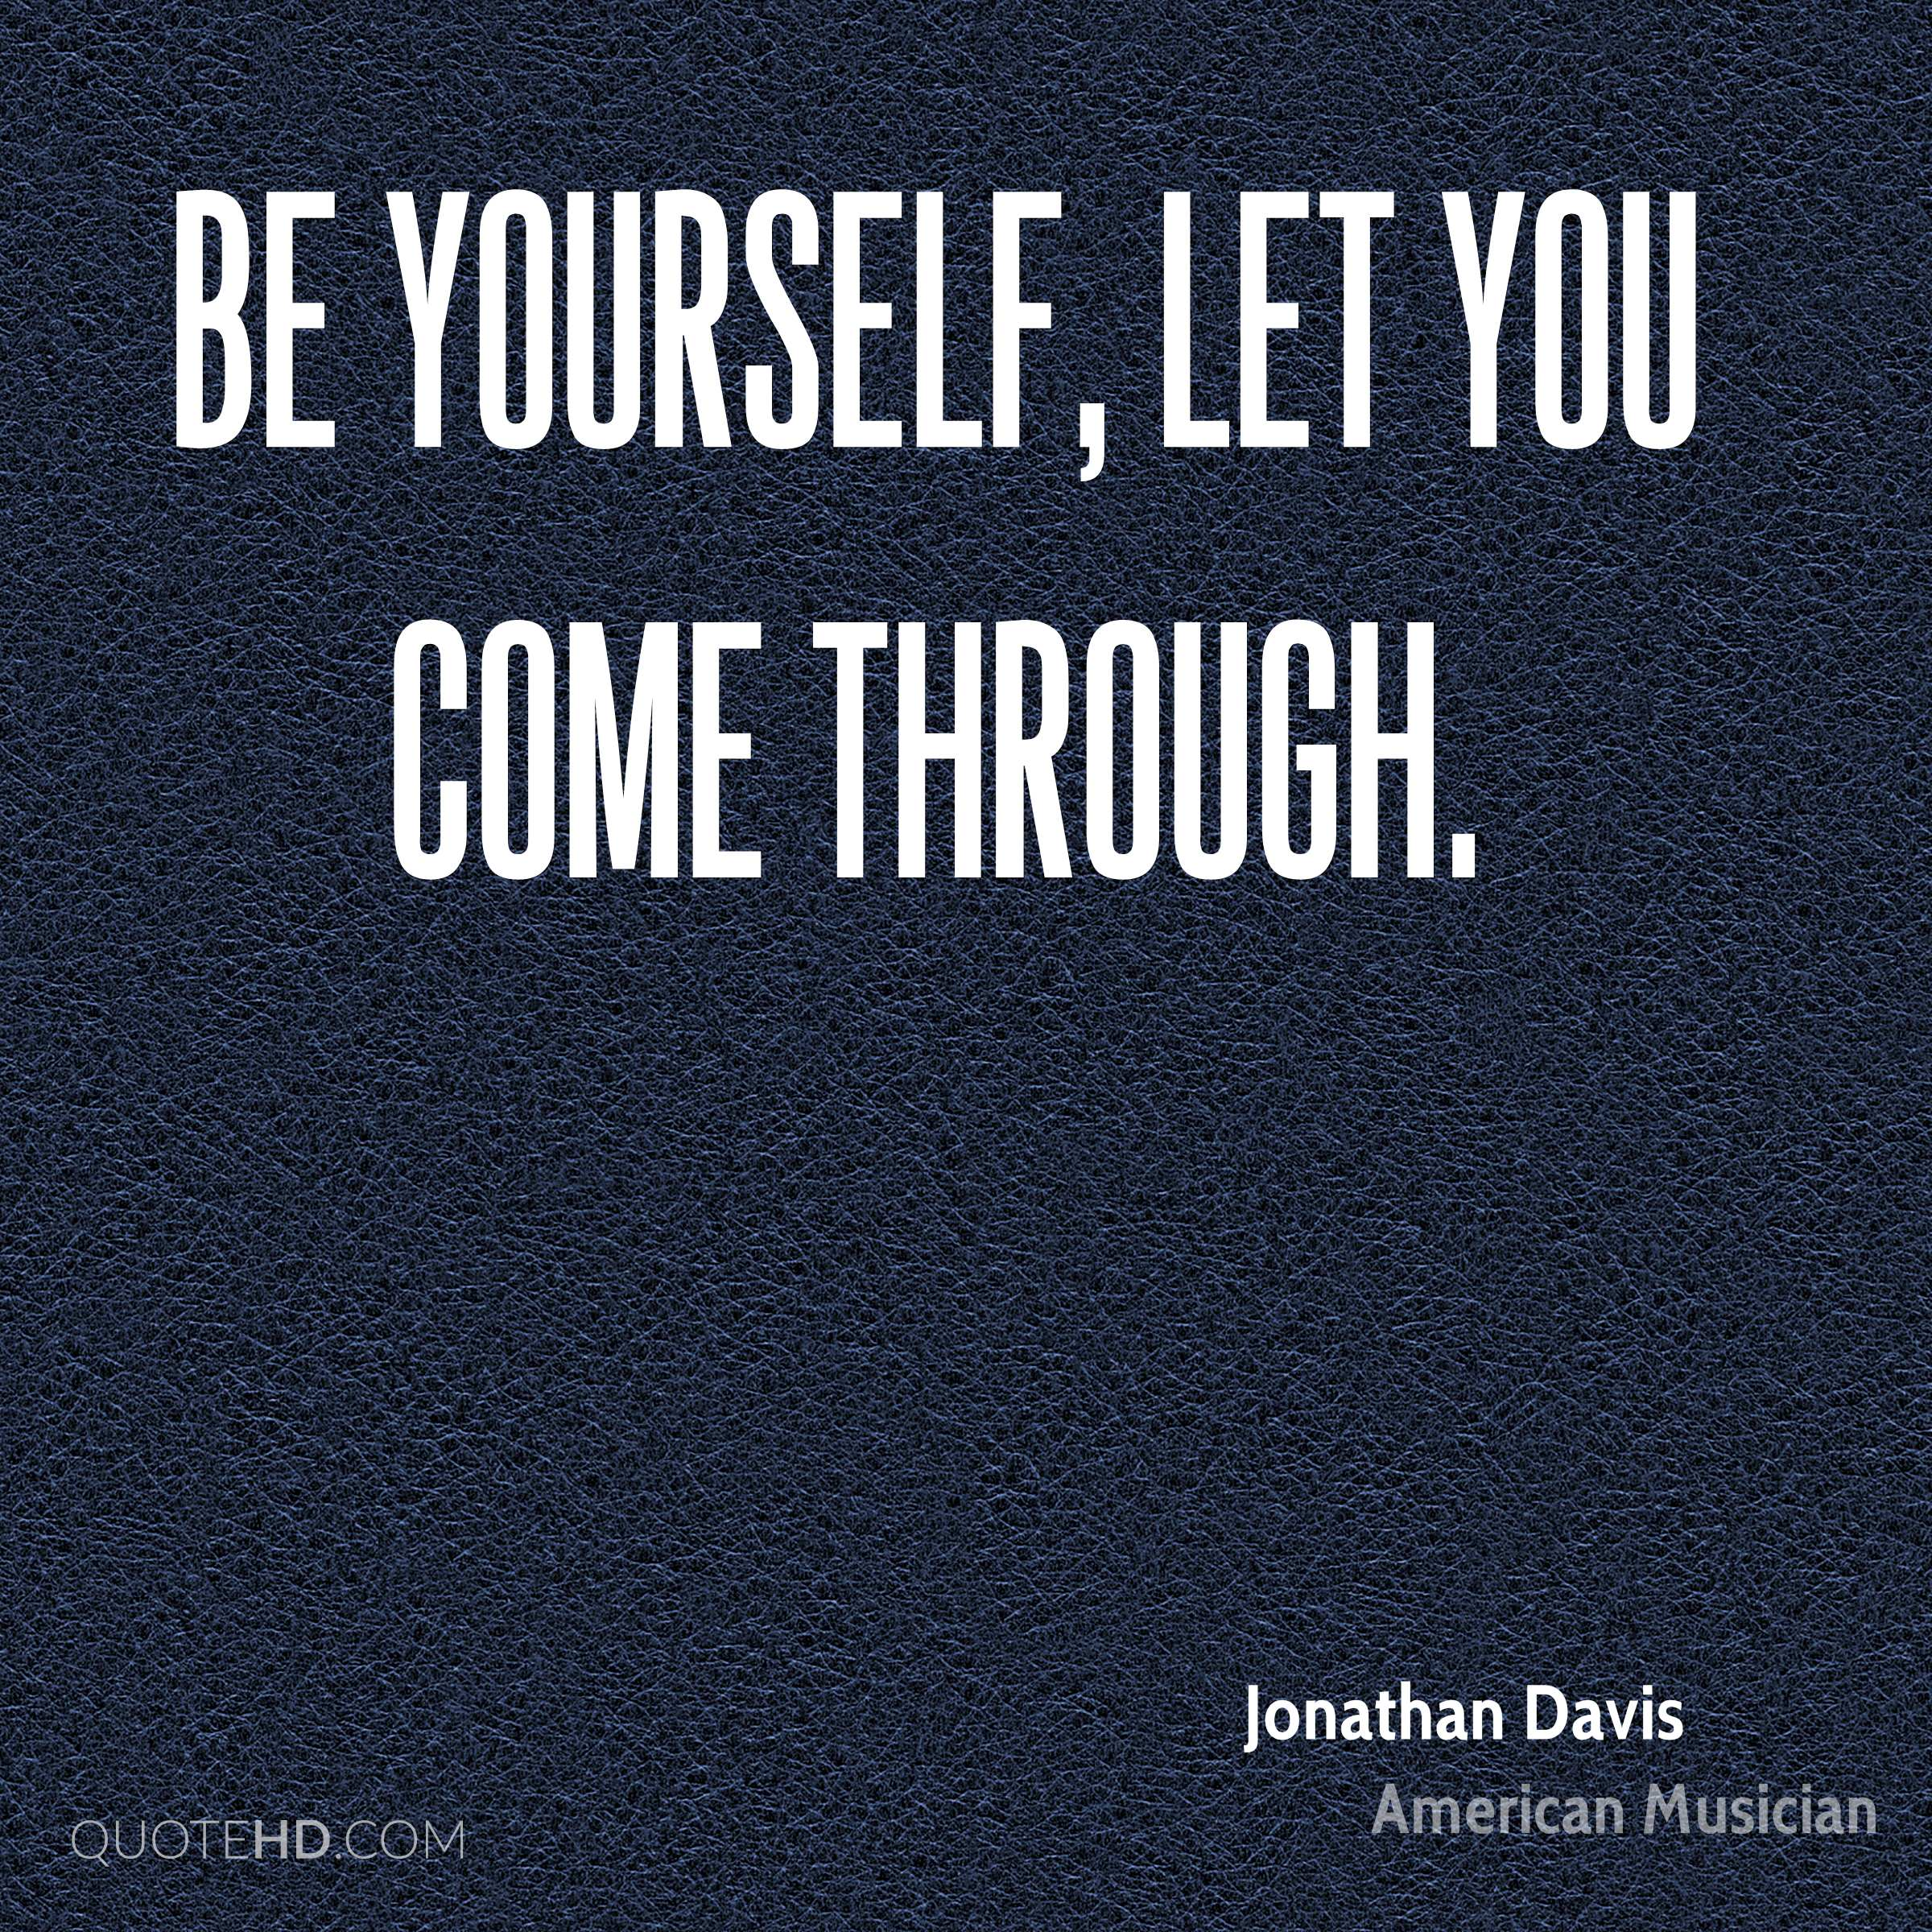 Be yourself, let you come through.